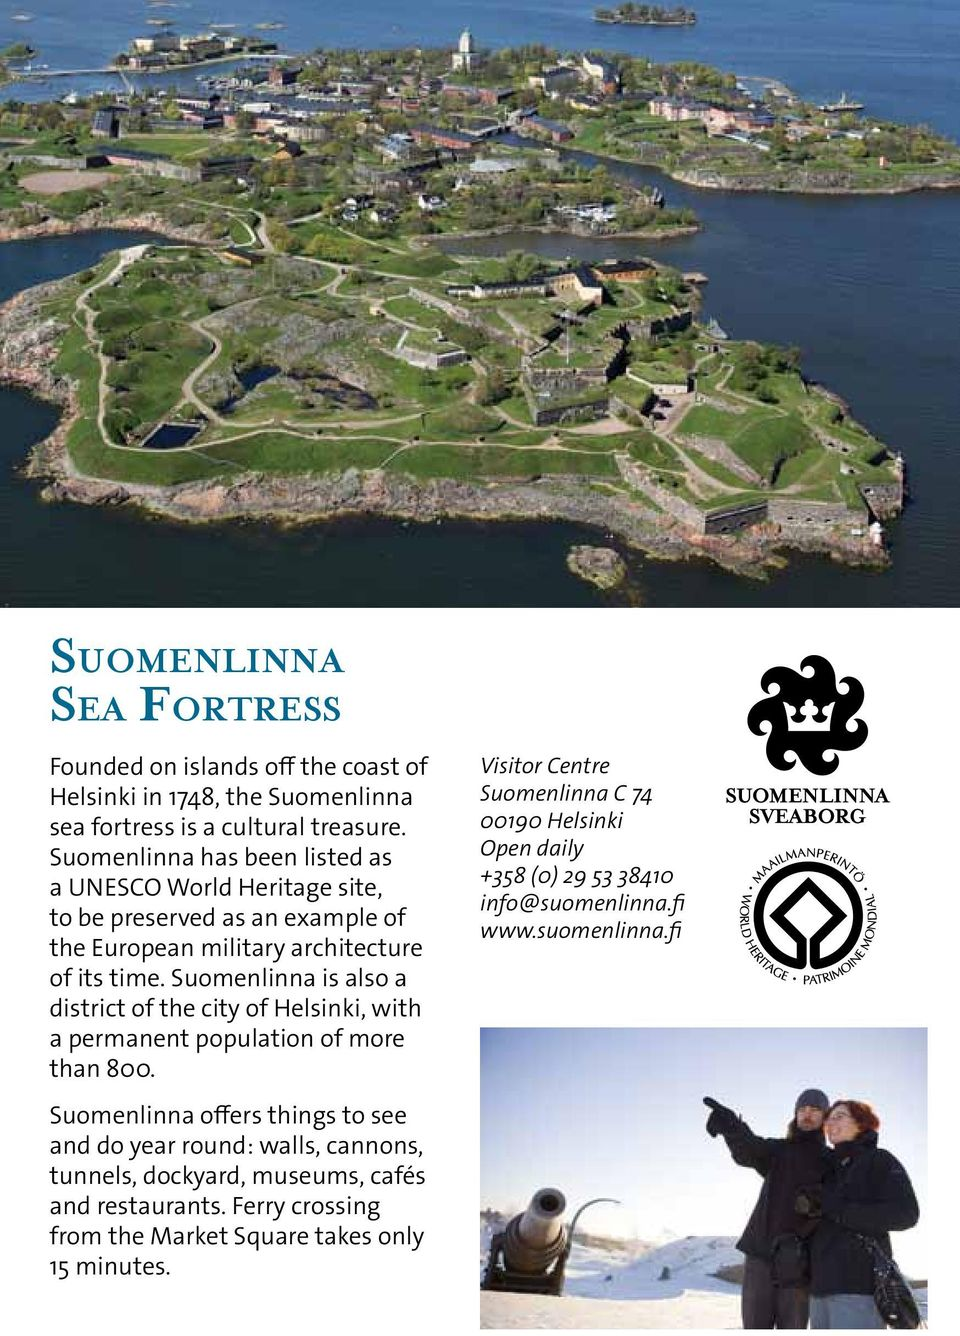 Suomenlinna is also a district of the city of Helsinki, with a permanent population of more than 800.